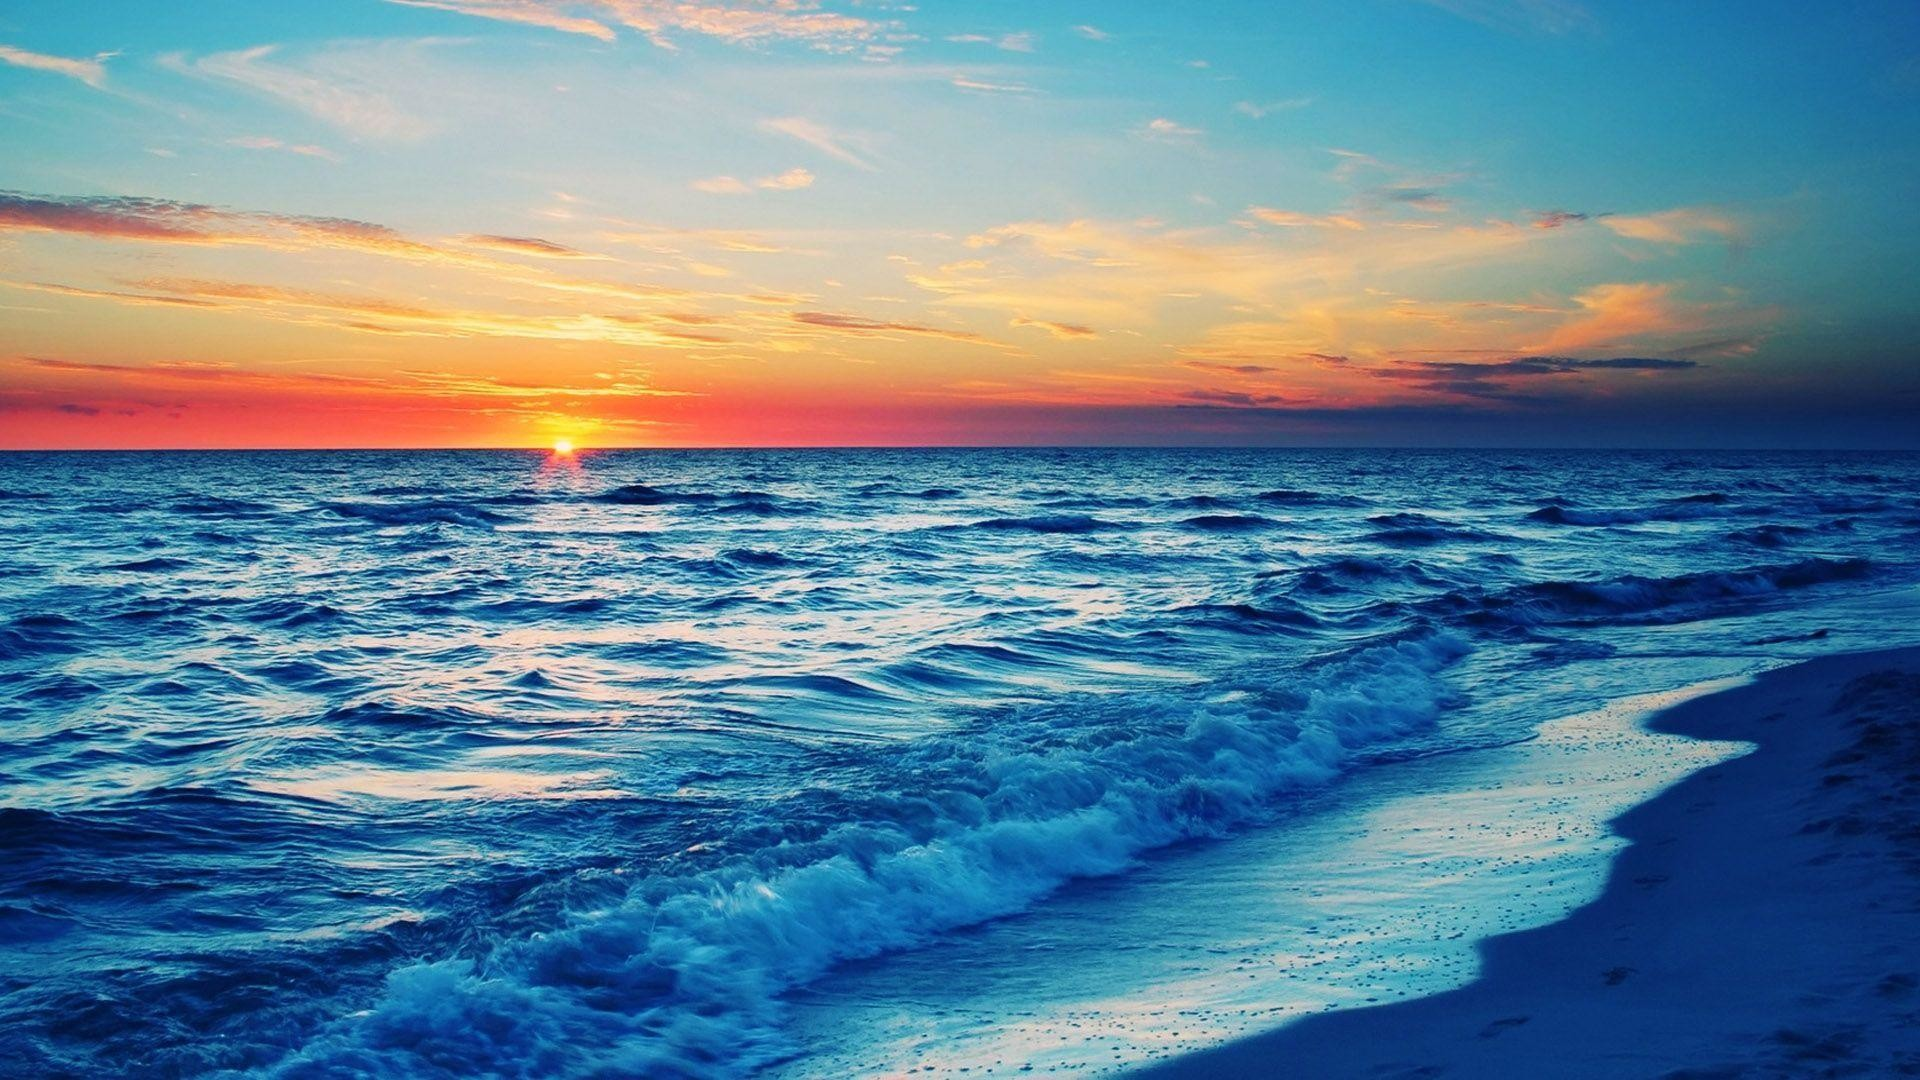 beach wallpapers hd 1080p   High Quality Wallpapers